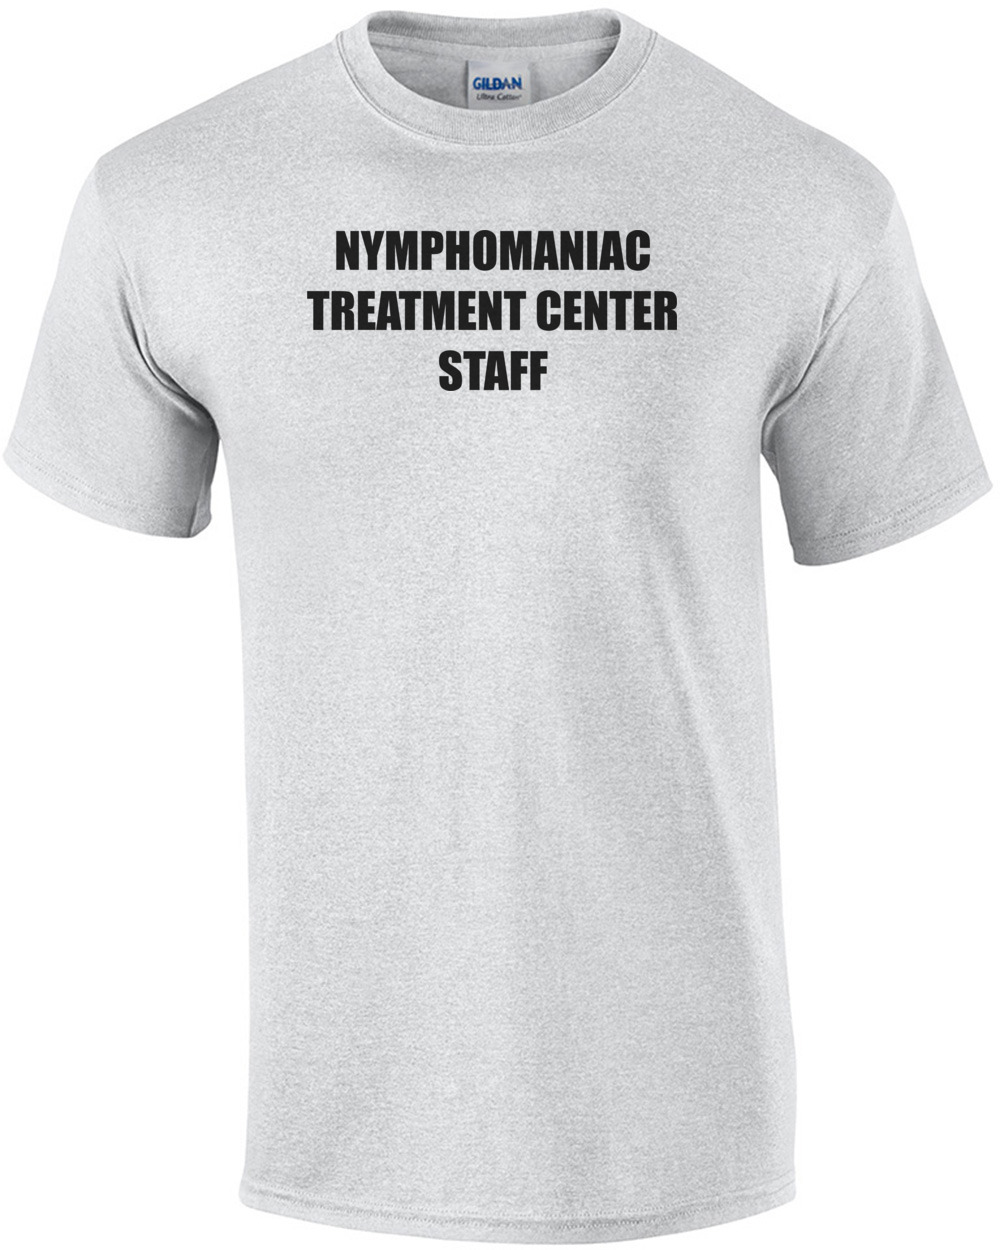 13c63972b nymphomaniac-treatment-center-staff-shirt-mens-regular-ash_1.jpg